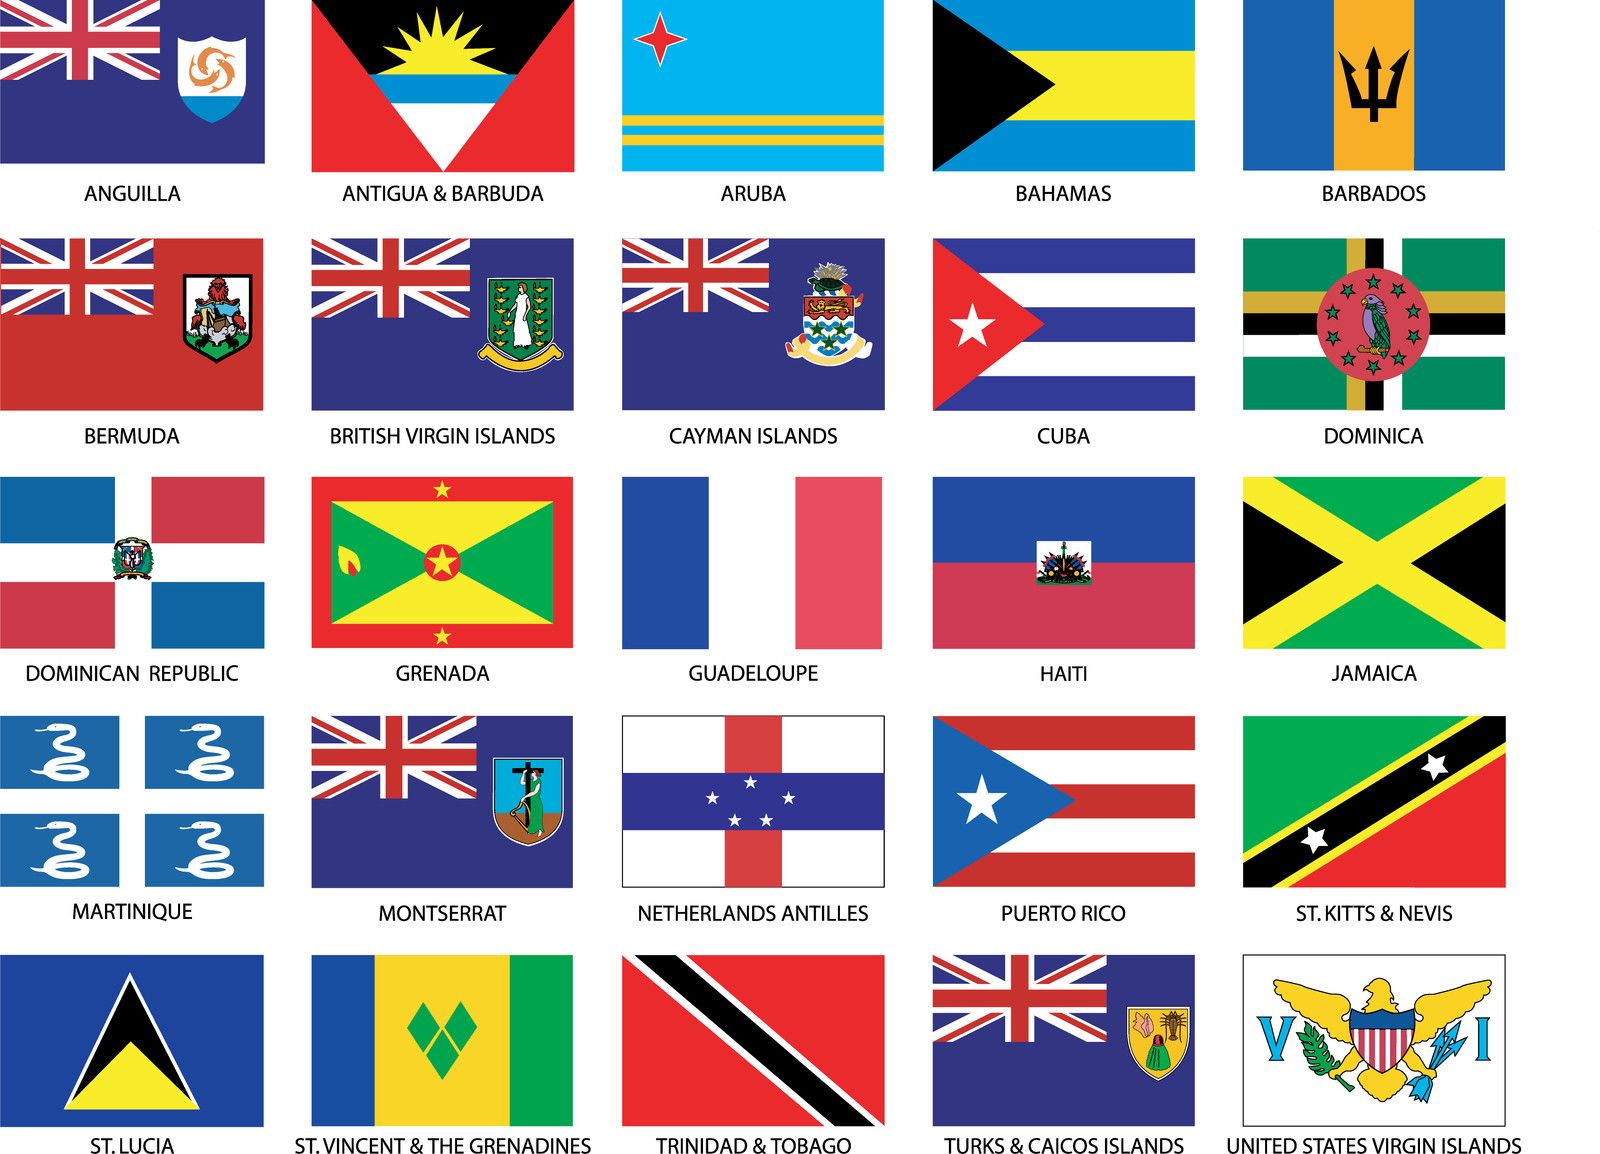 Caribbean Countries Flags & Embassy Services | West Indian Social Club ...